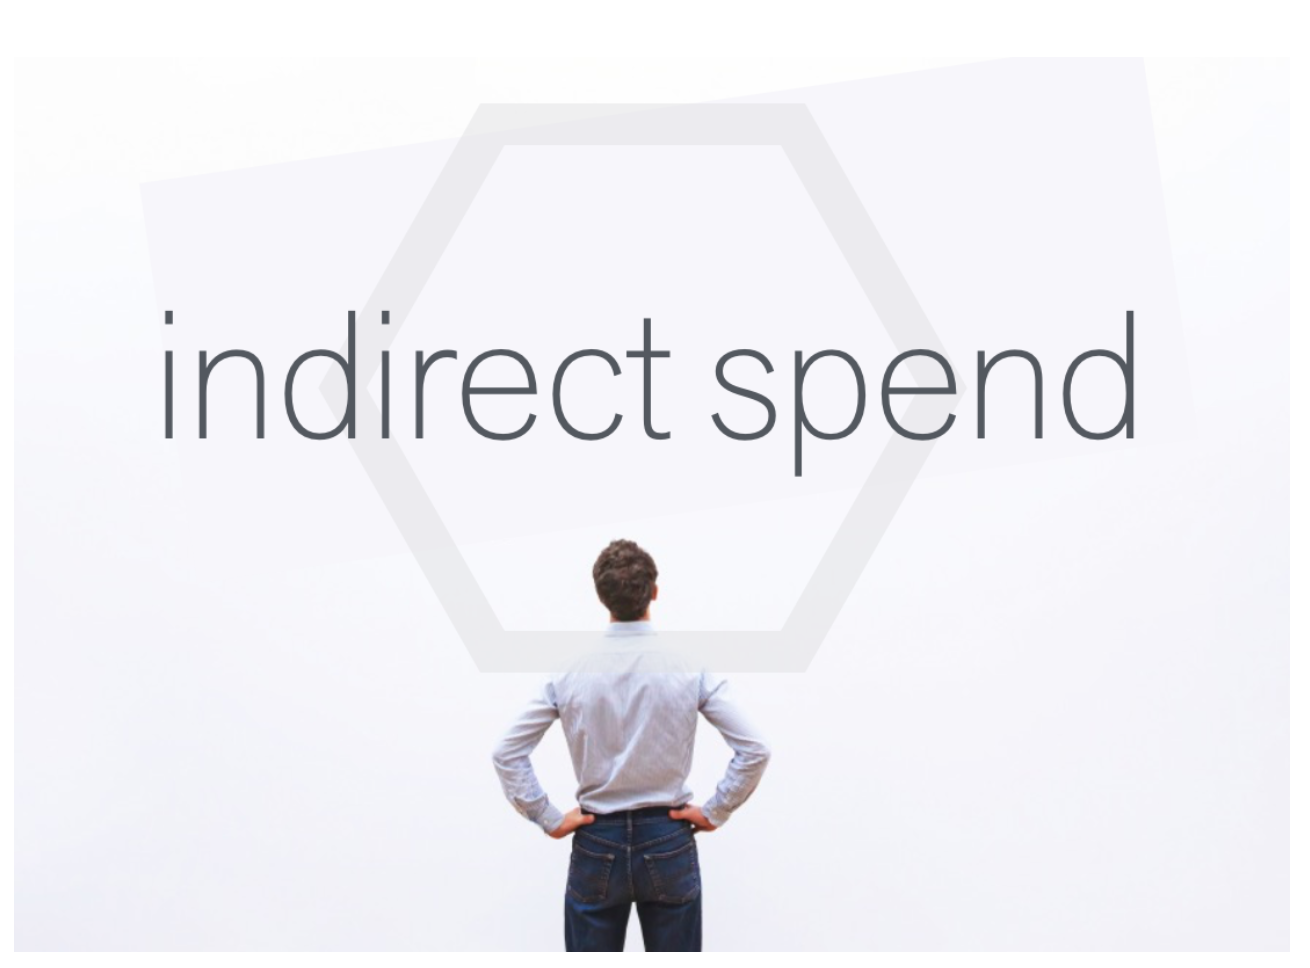 indirect spend